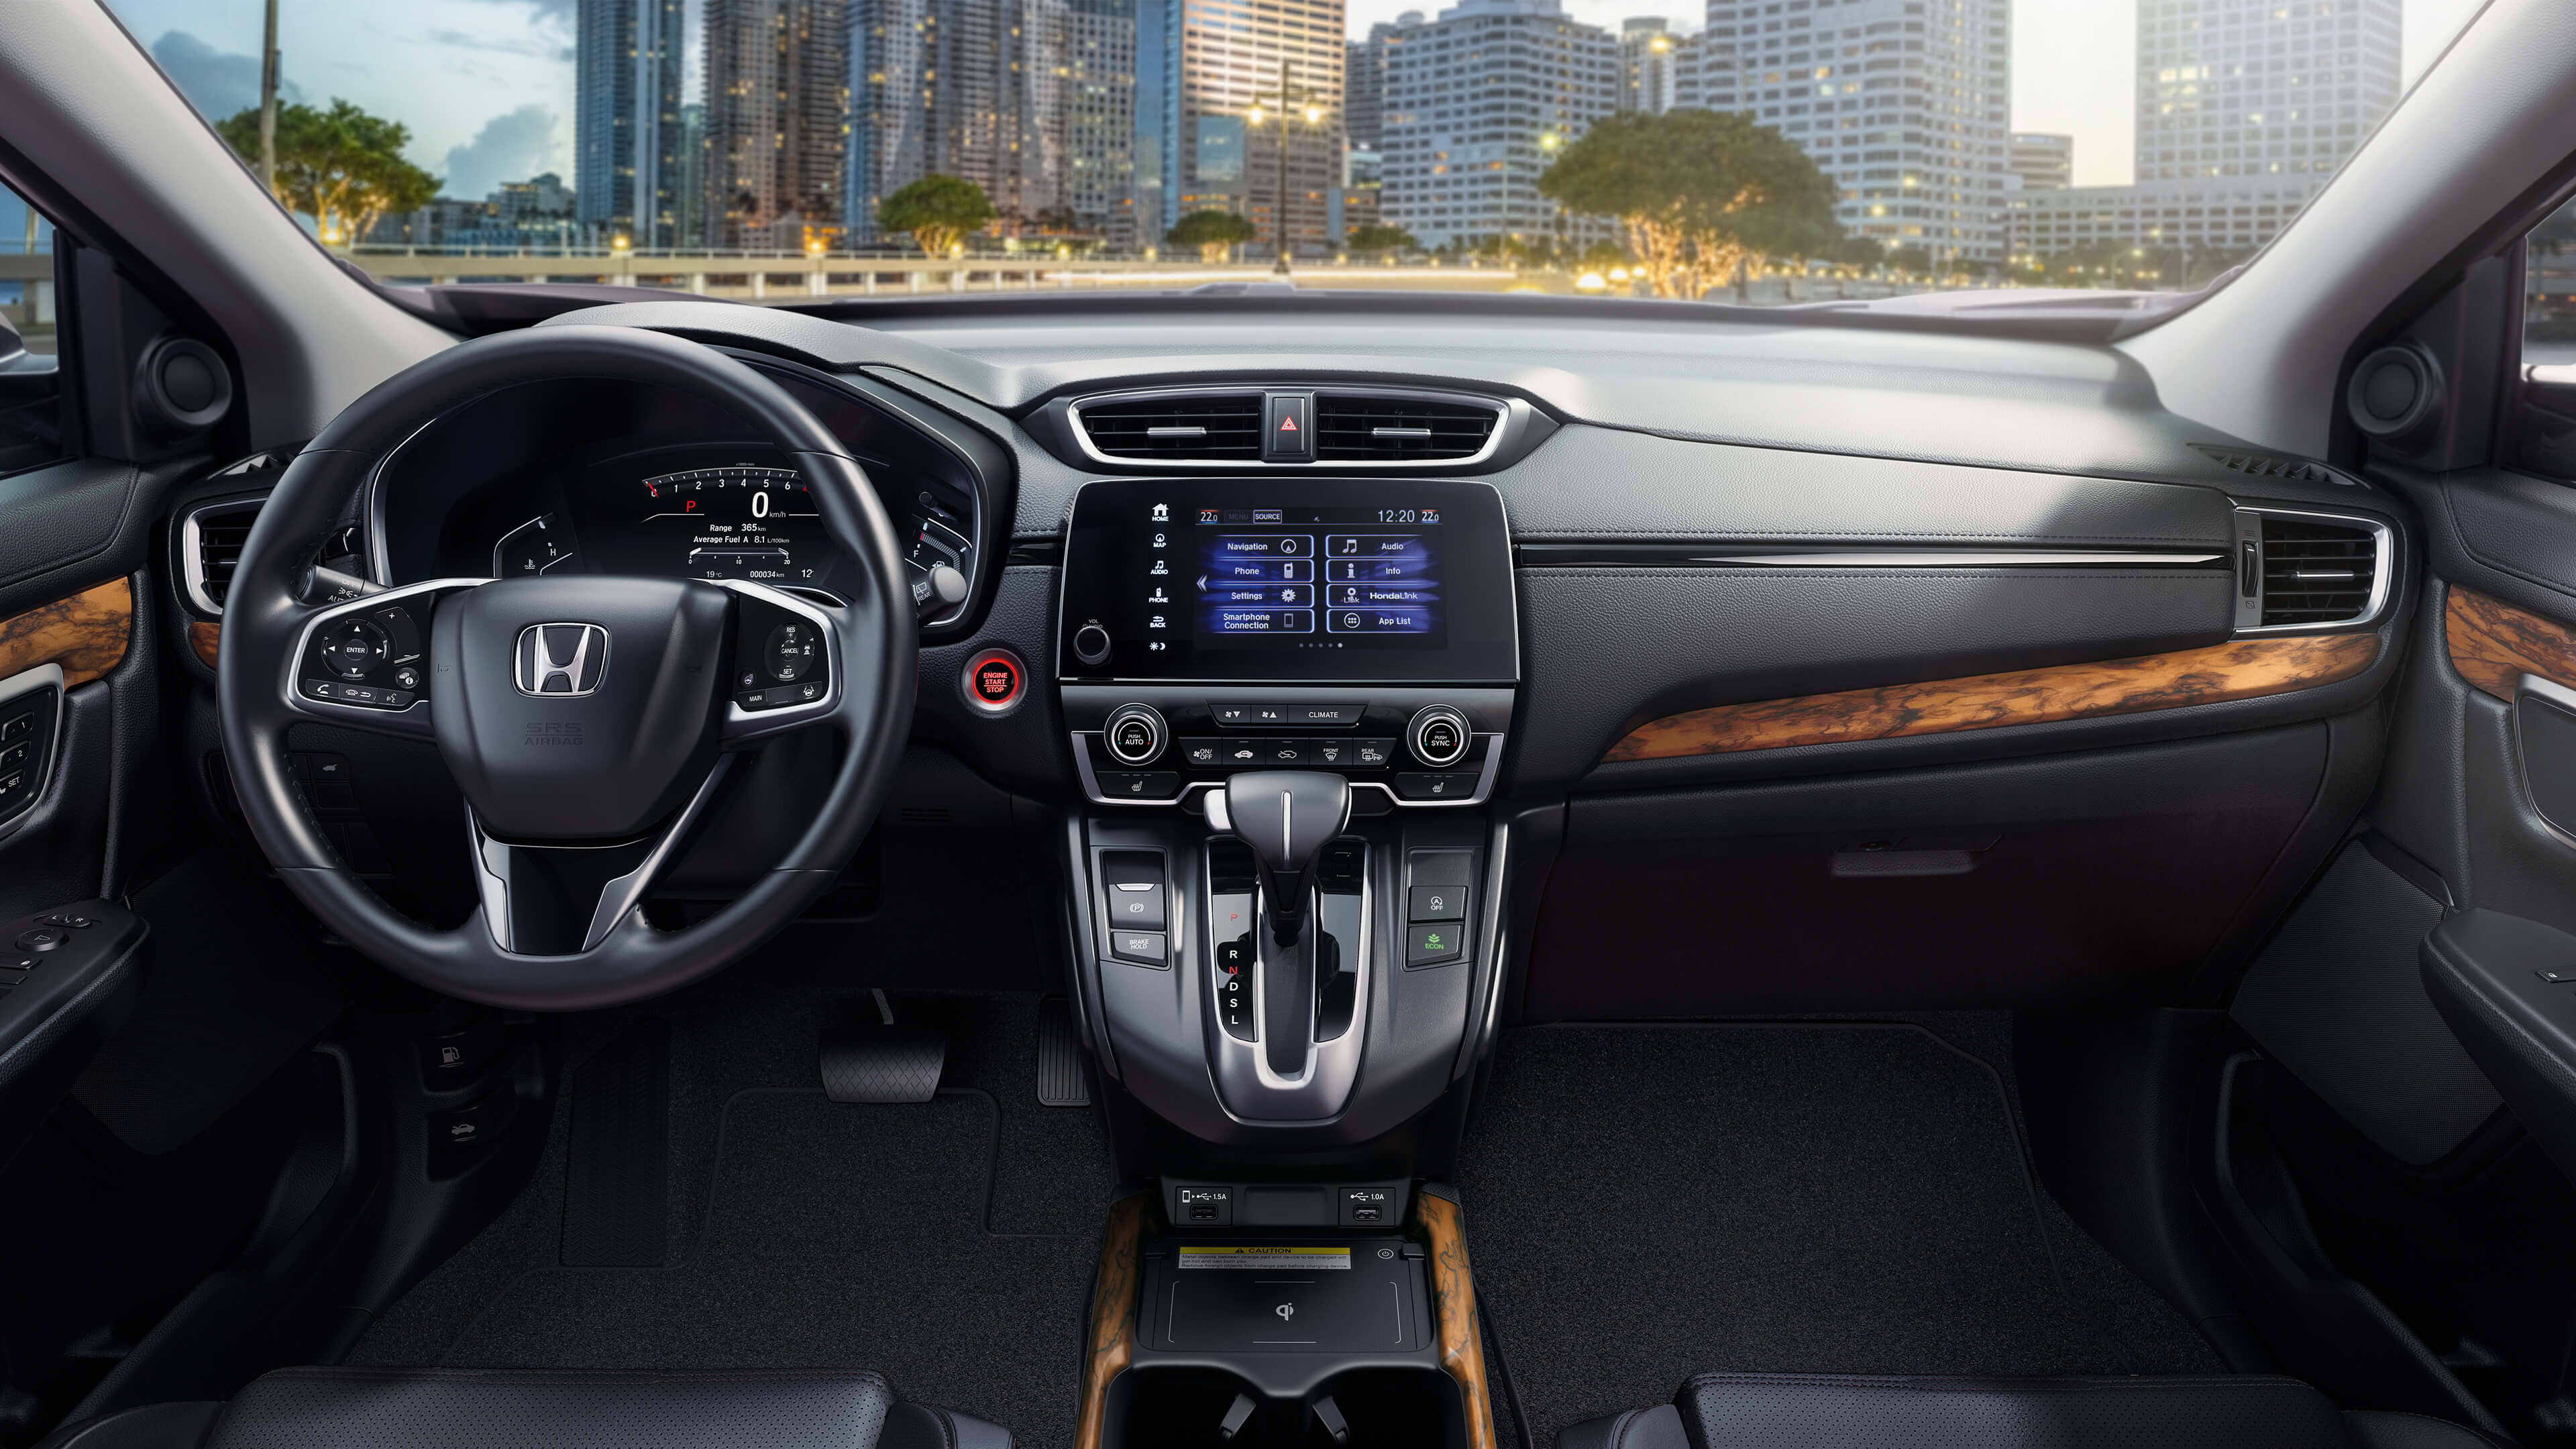 2020 Honda CR-V Technology at Richmond Hill Honda in Toronto and the GTA